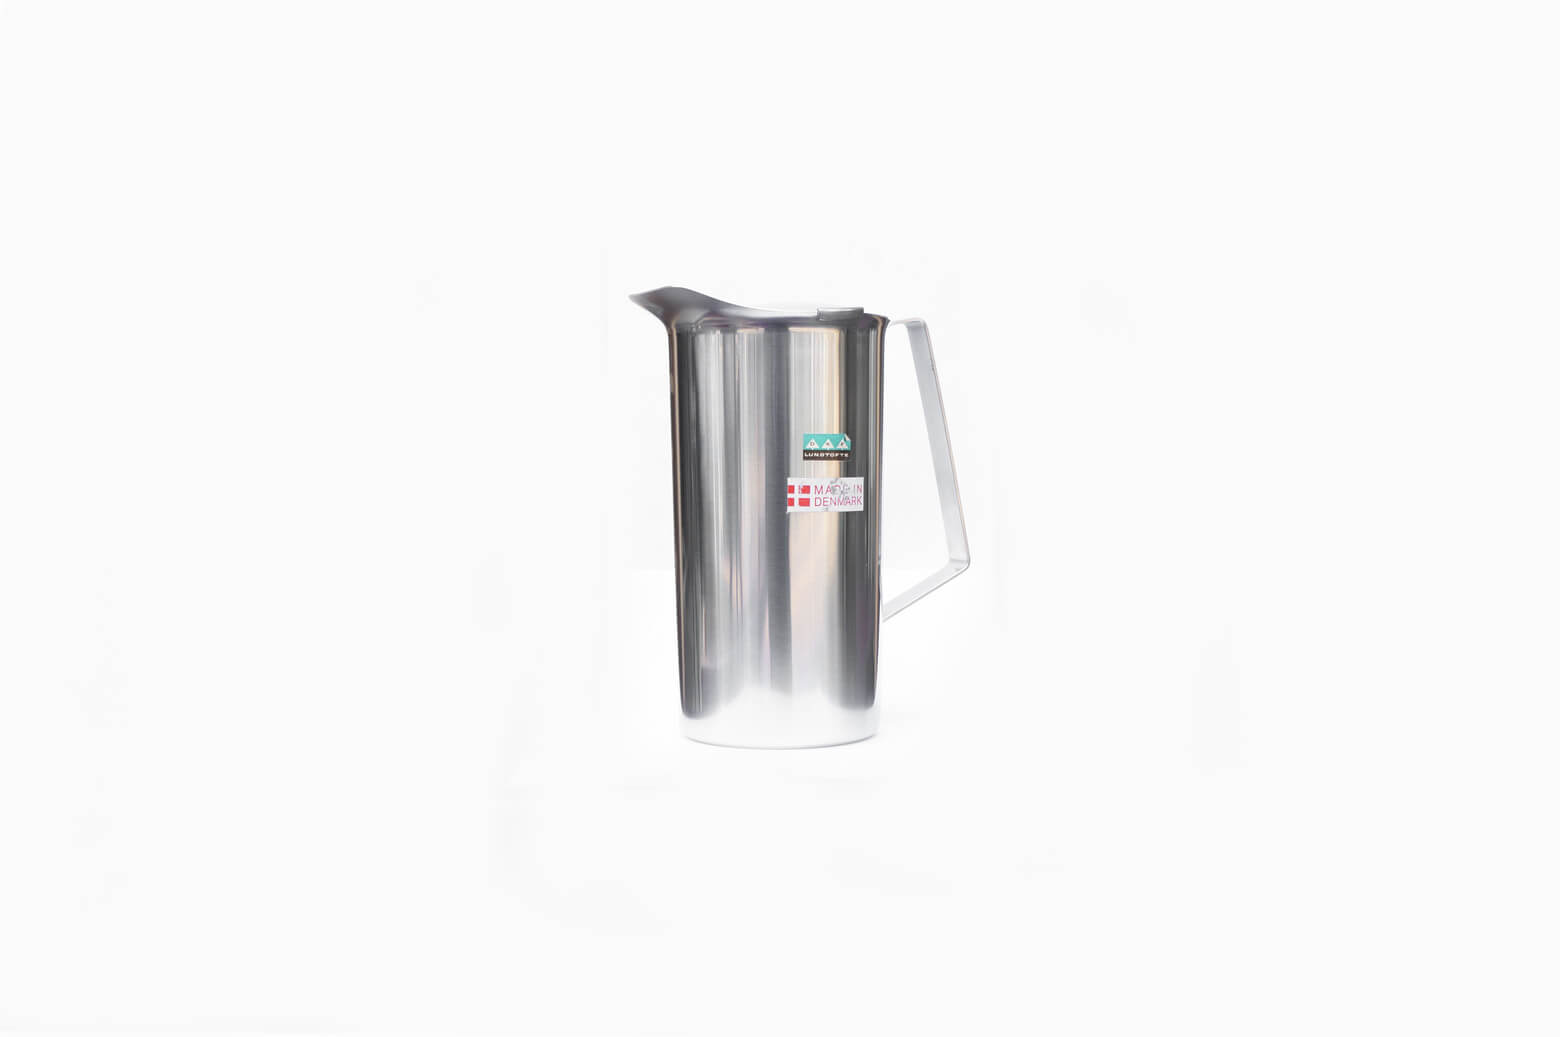 DKF LUNDTOFTE Stainless Pitcher made in Denmark/デンマーク製 ステンレス ピッチャー 北欧雑貨 ヴィンテージ